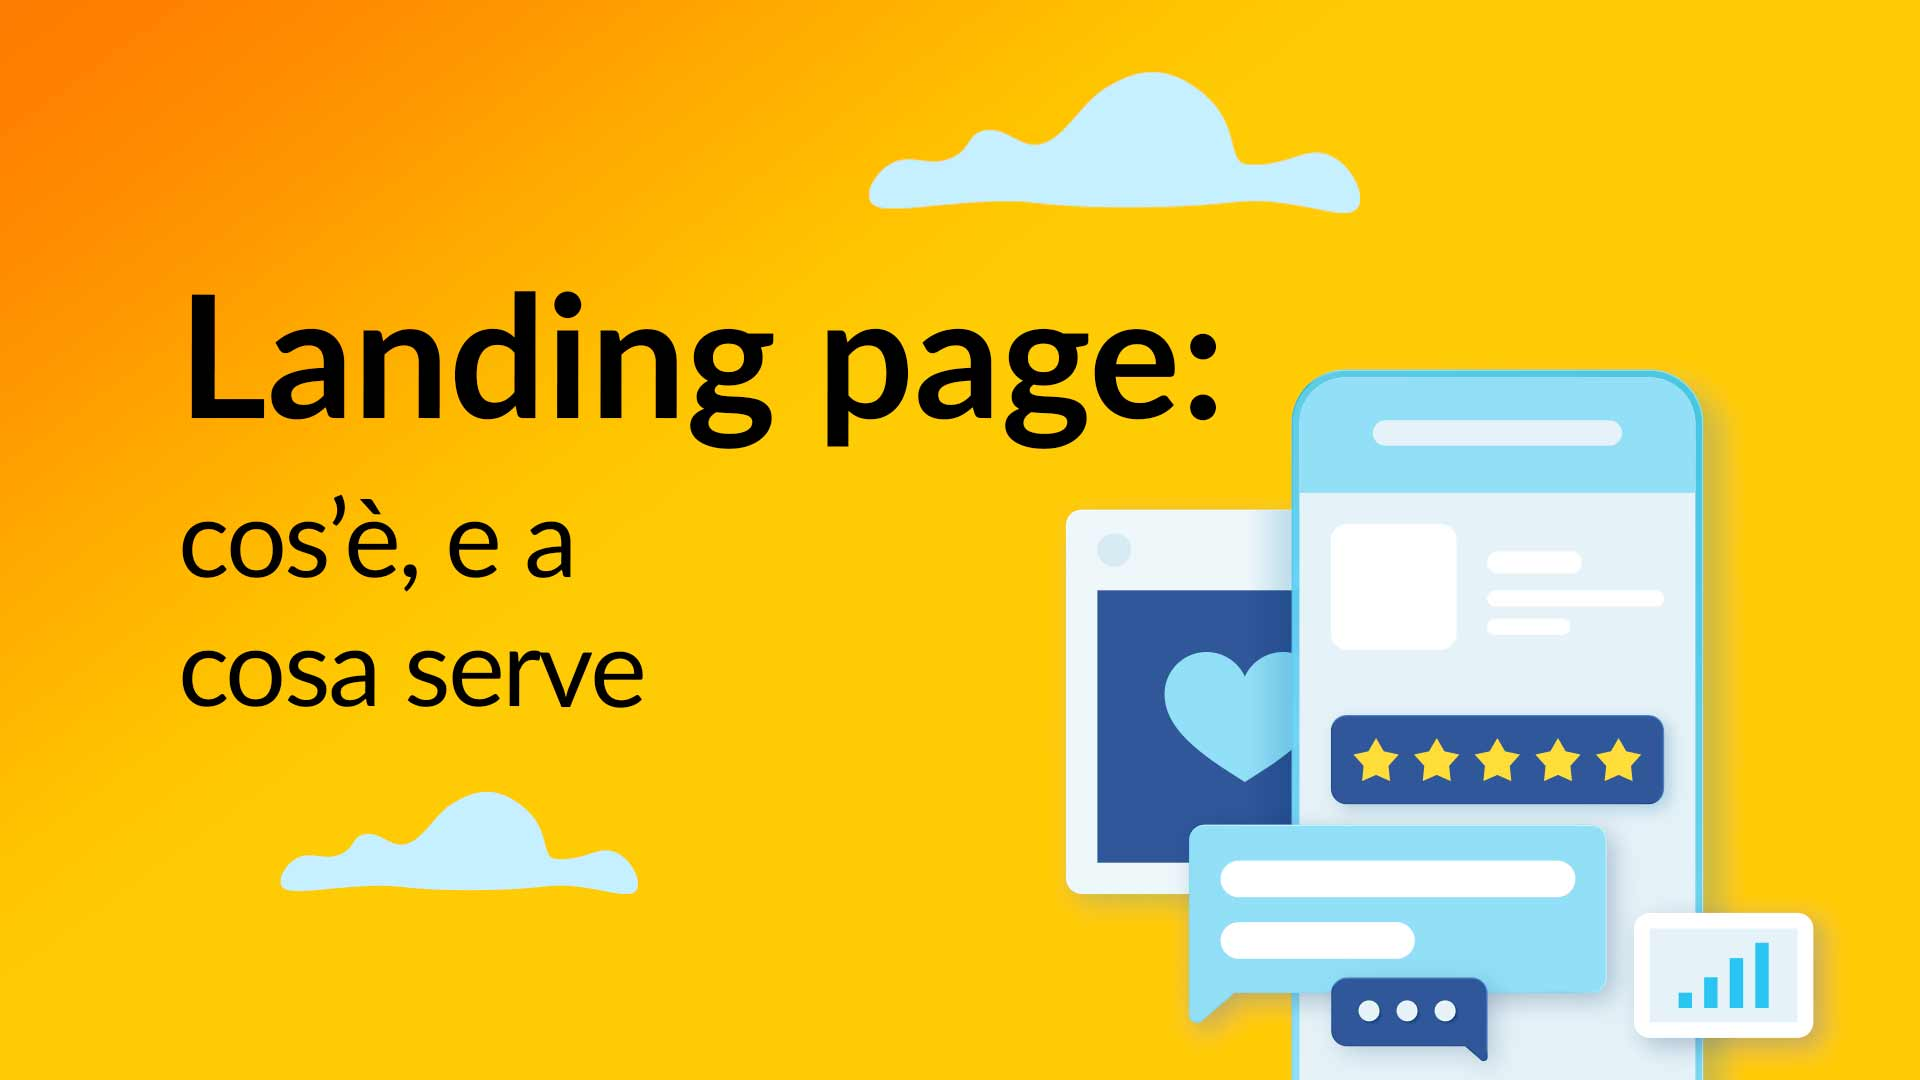 Landing page: cos'è e a cosa serve